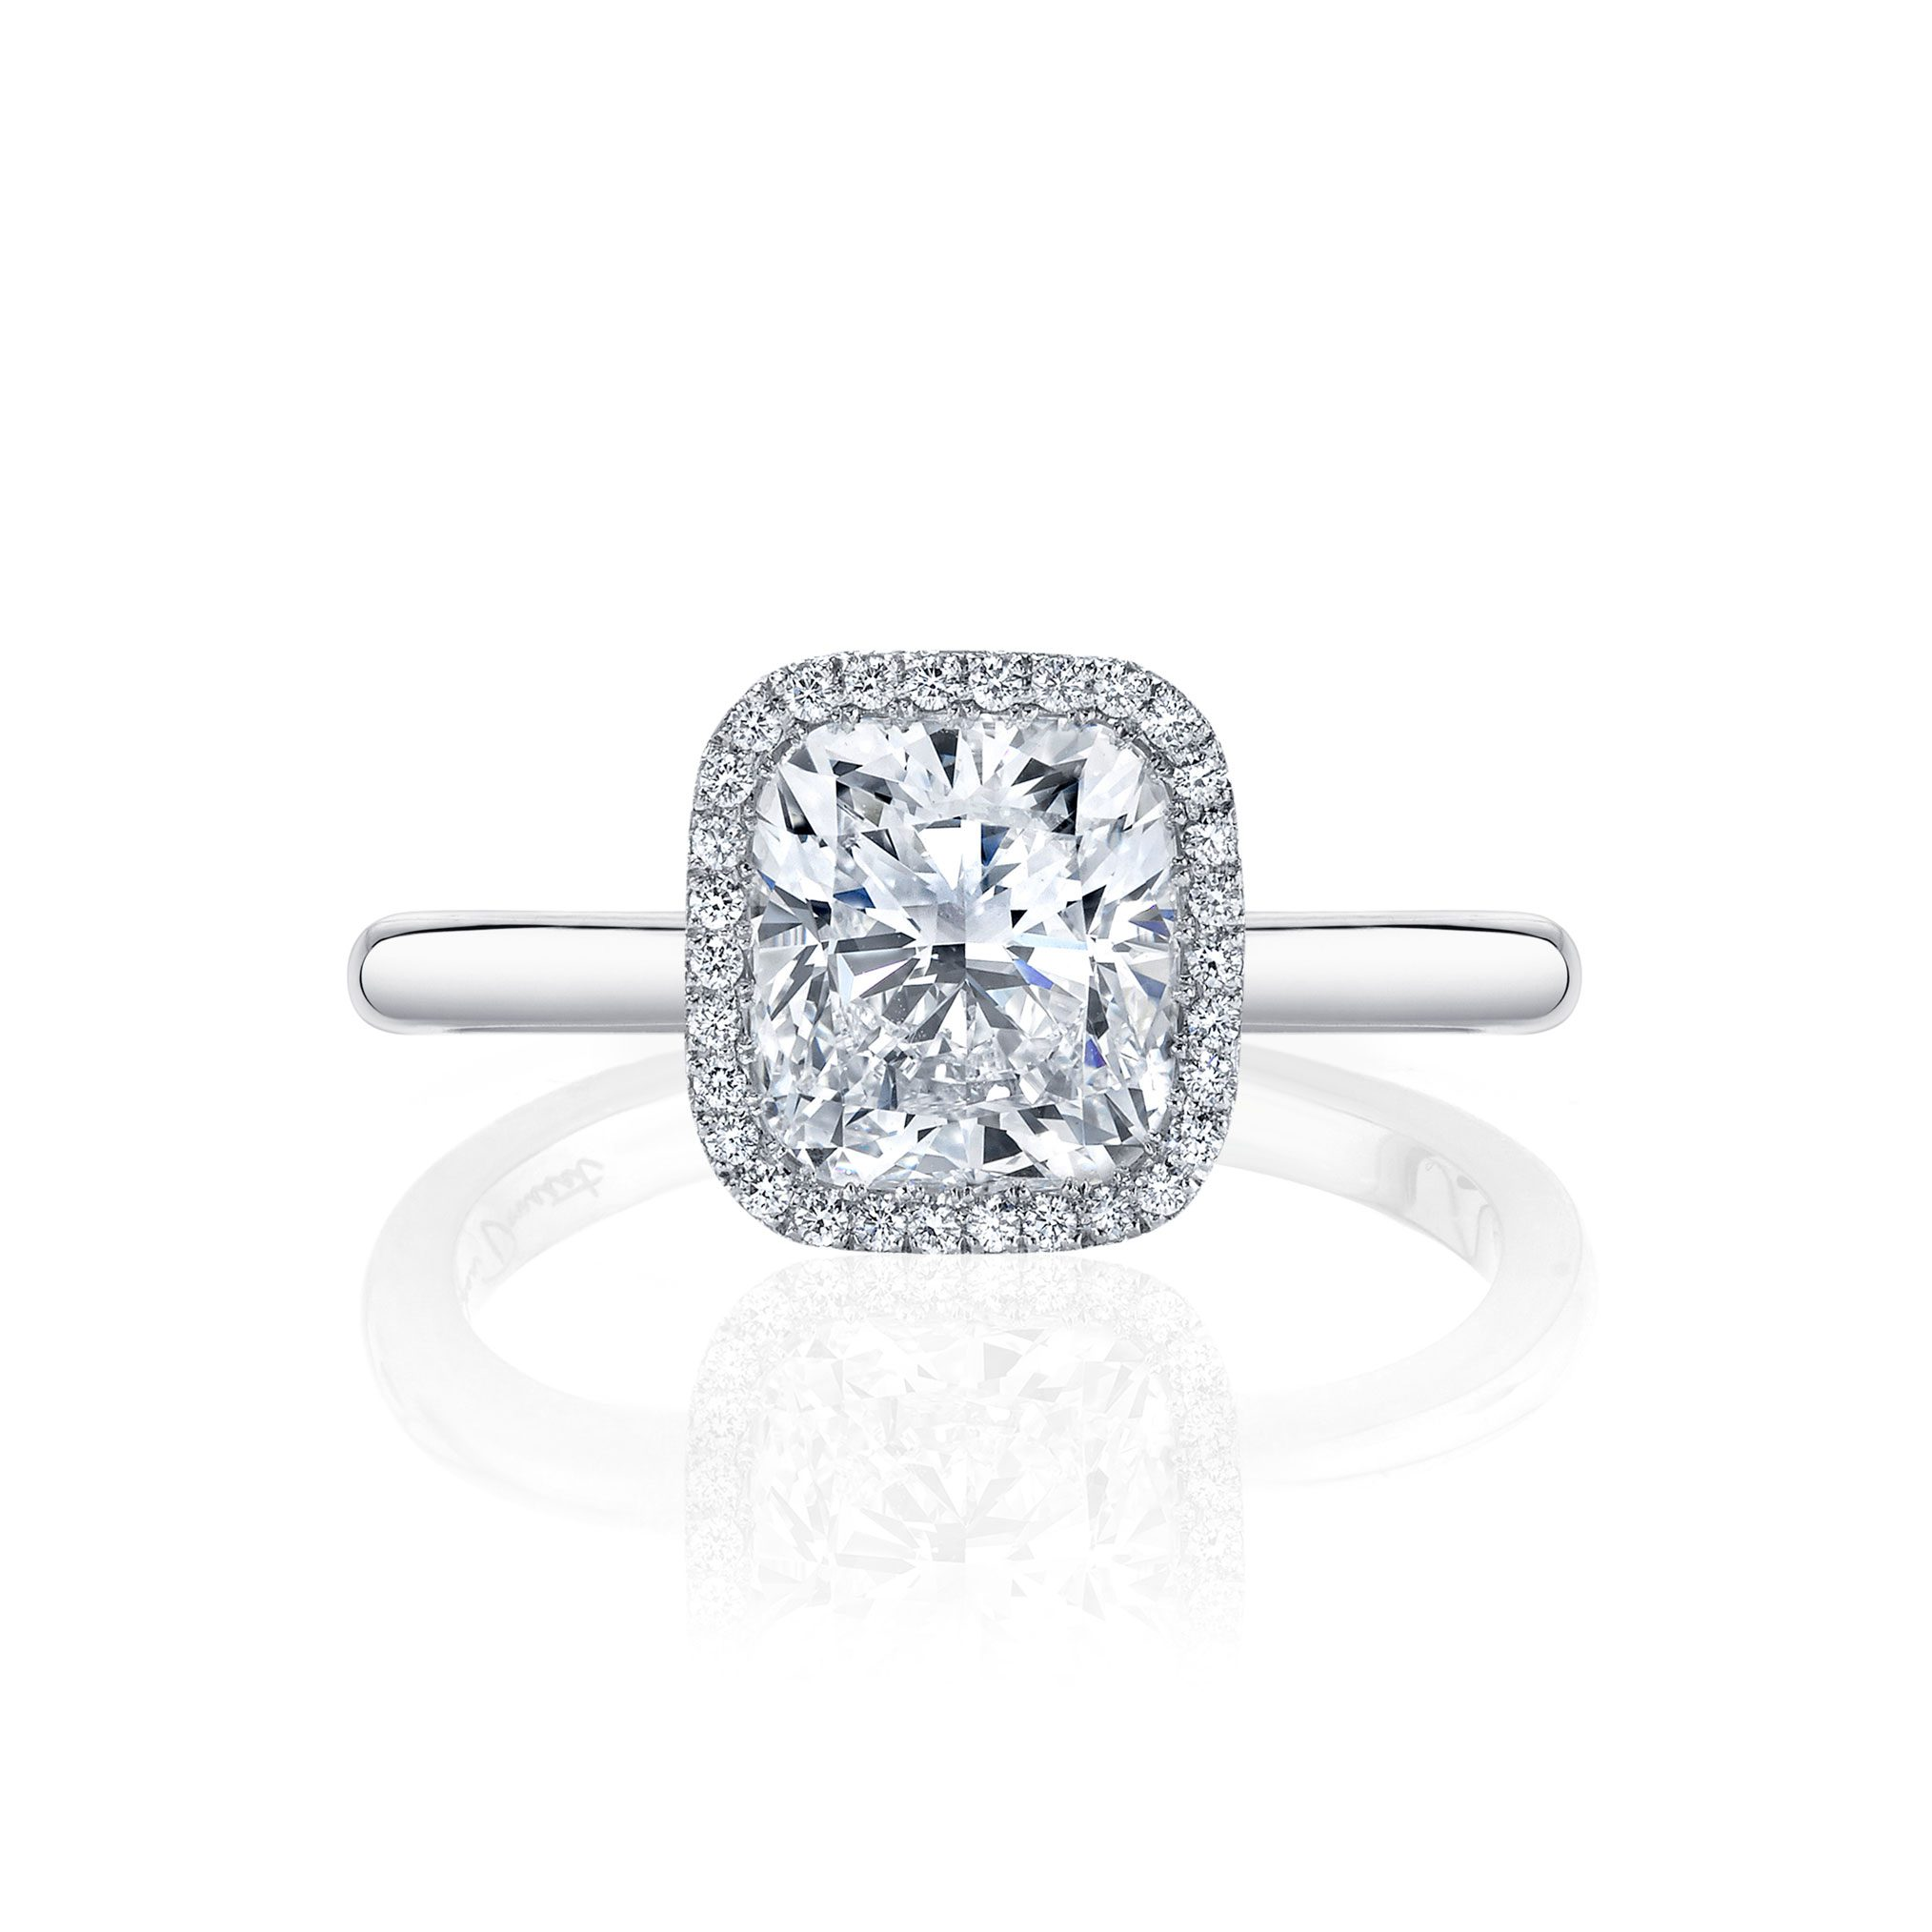 Colette Seamless Halo® Engagement Ring Cushion Cut Ring with white gold band